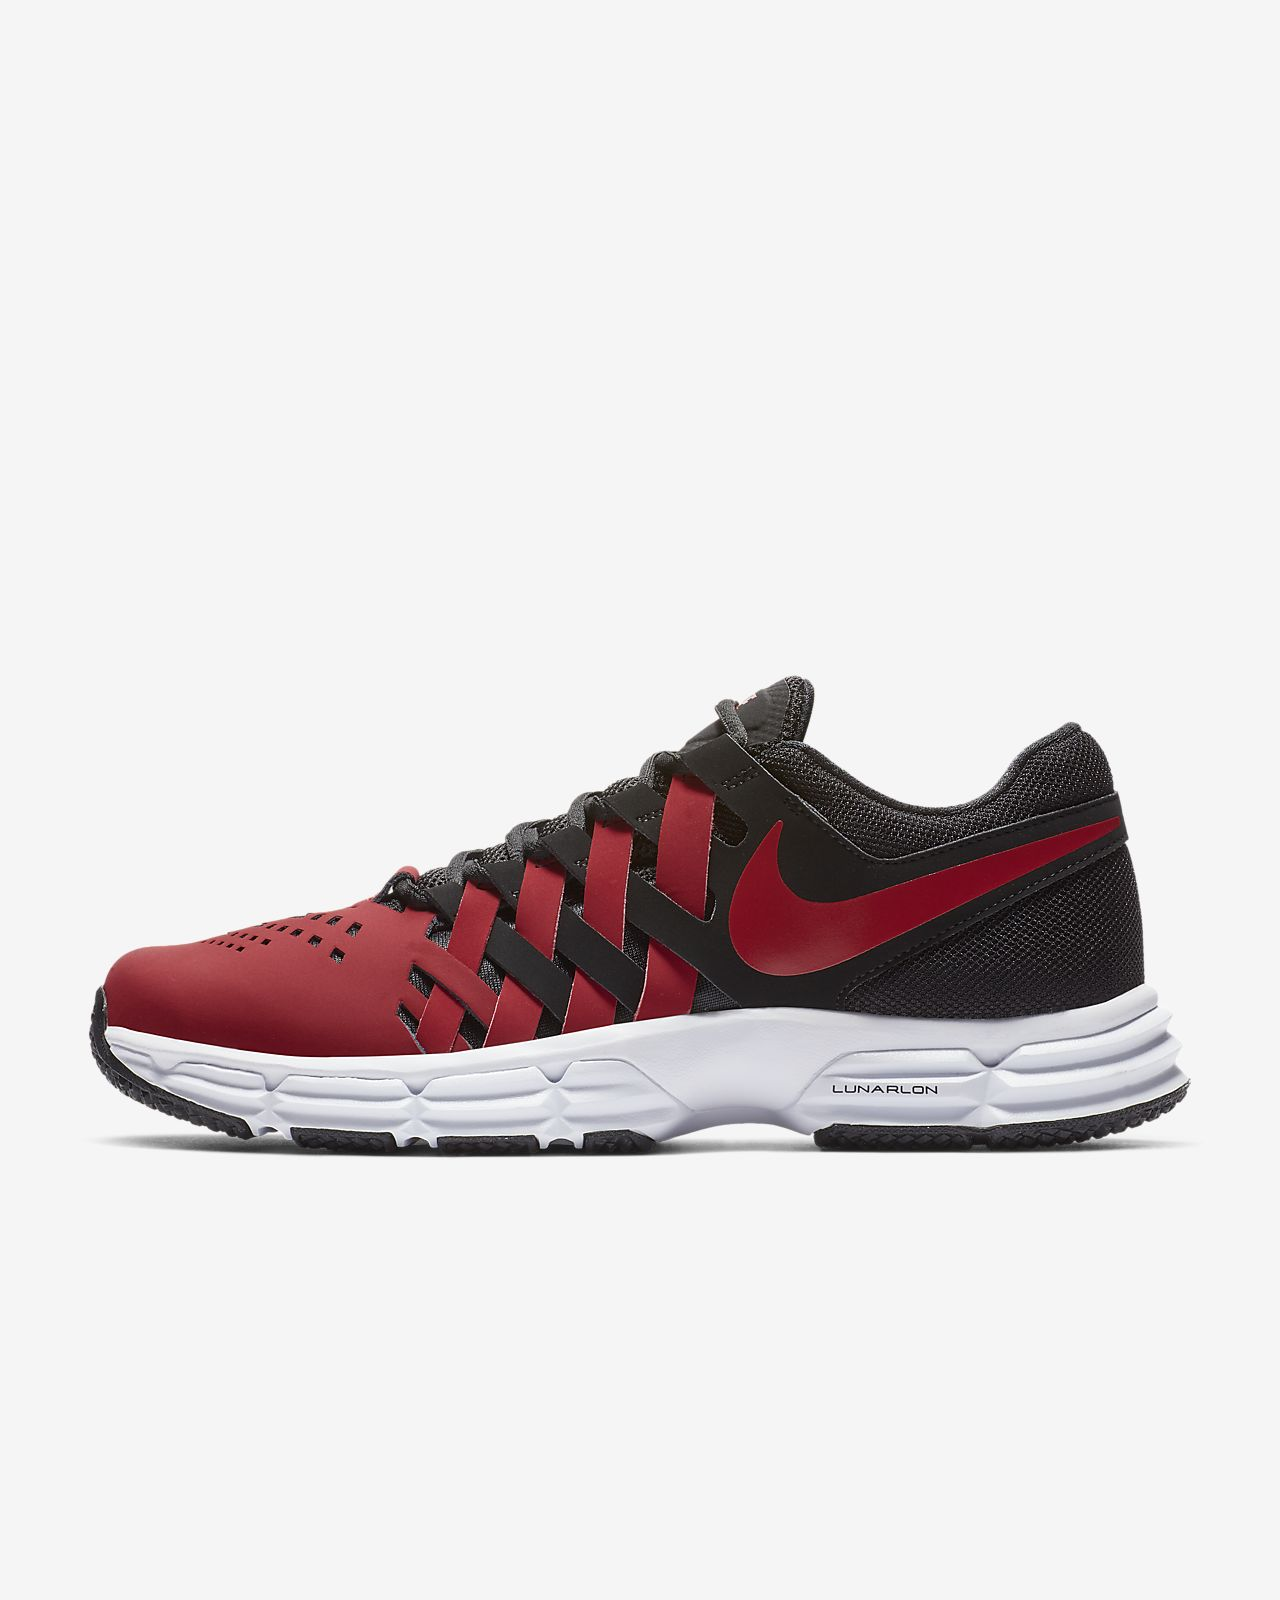 Nike Lunar Fingertrap TR Men's Gym/Gameday Shoe